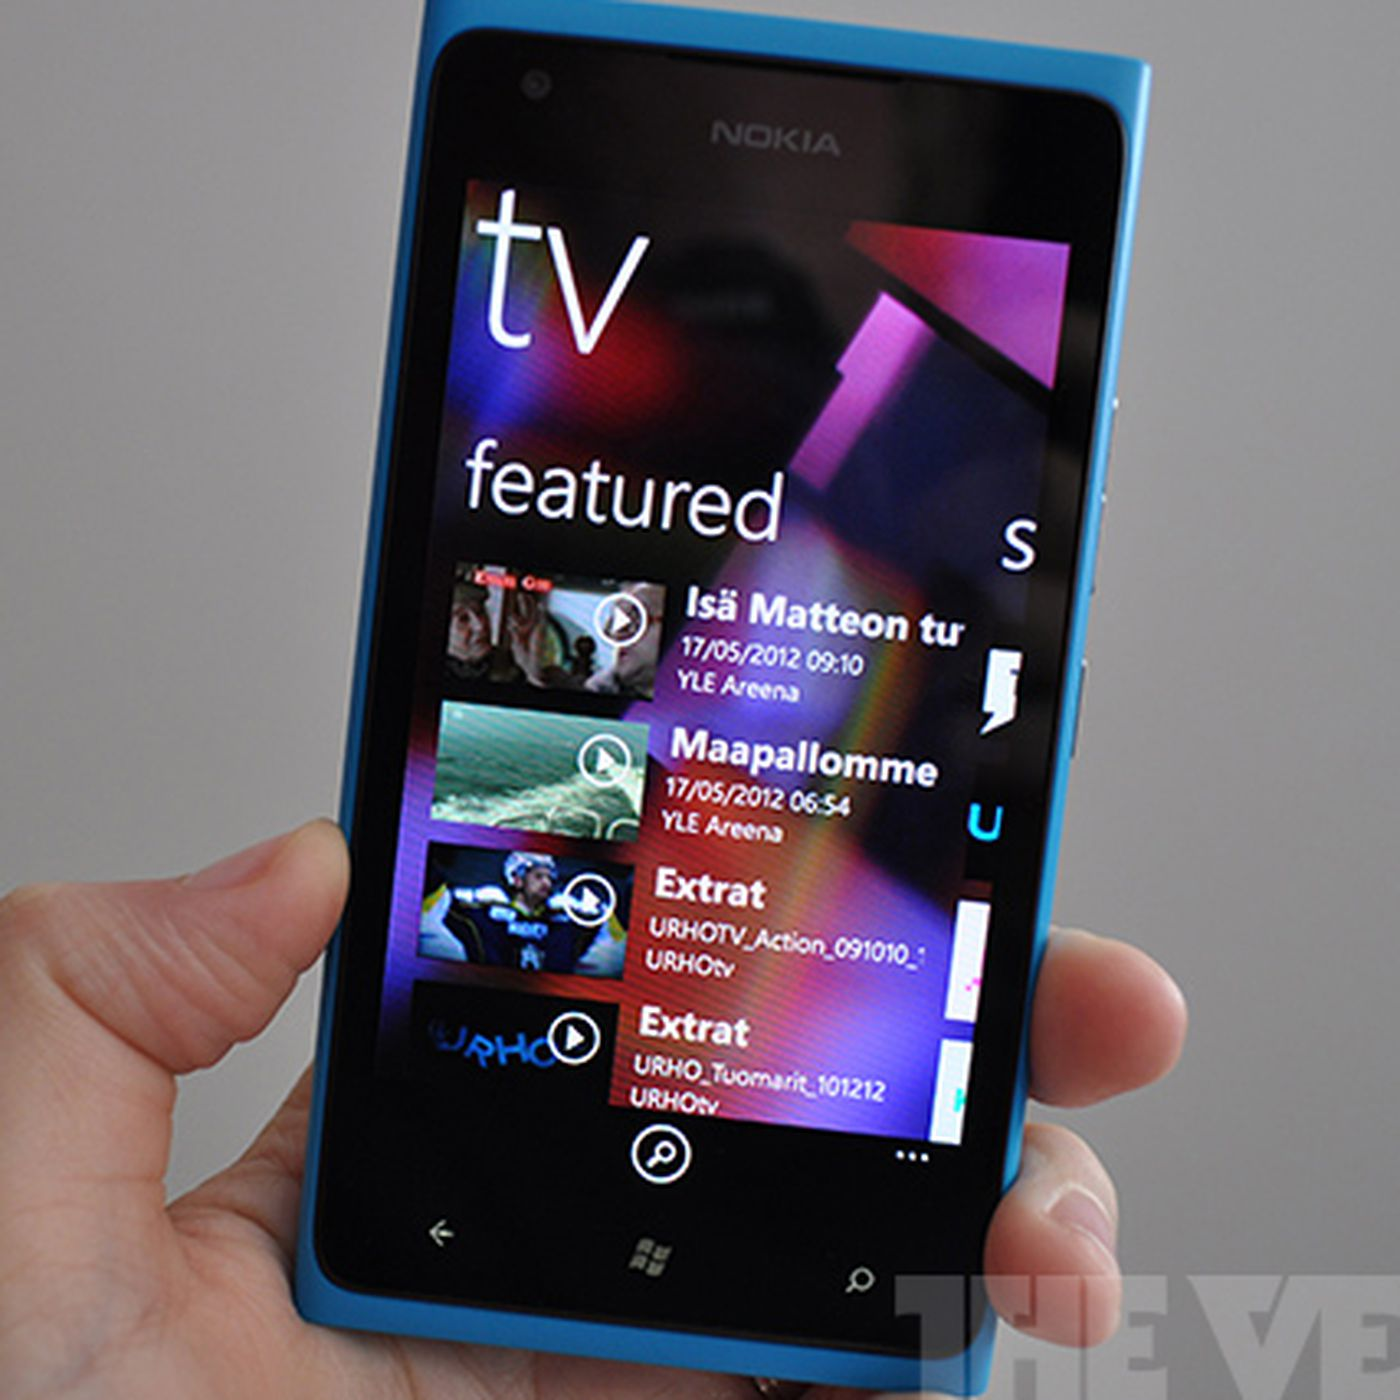 Nokia Tv Now Available For Lumia Windows Phones